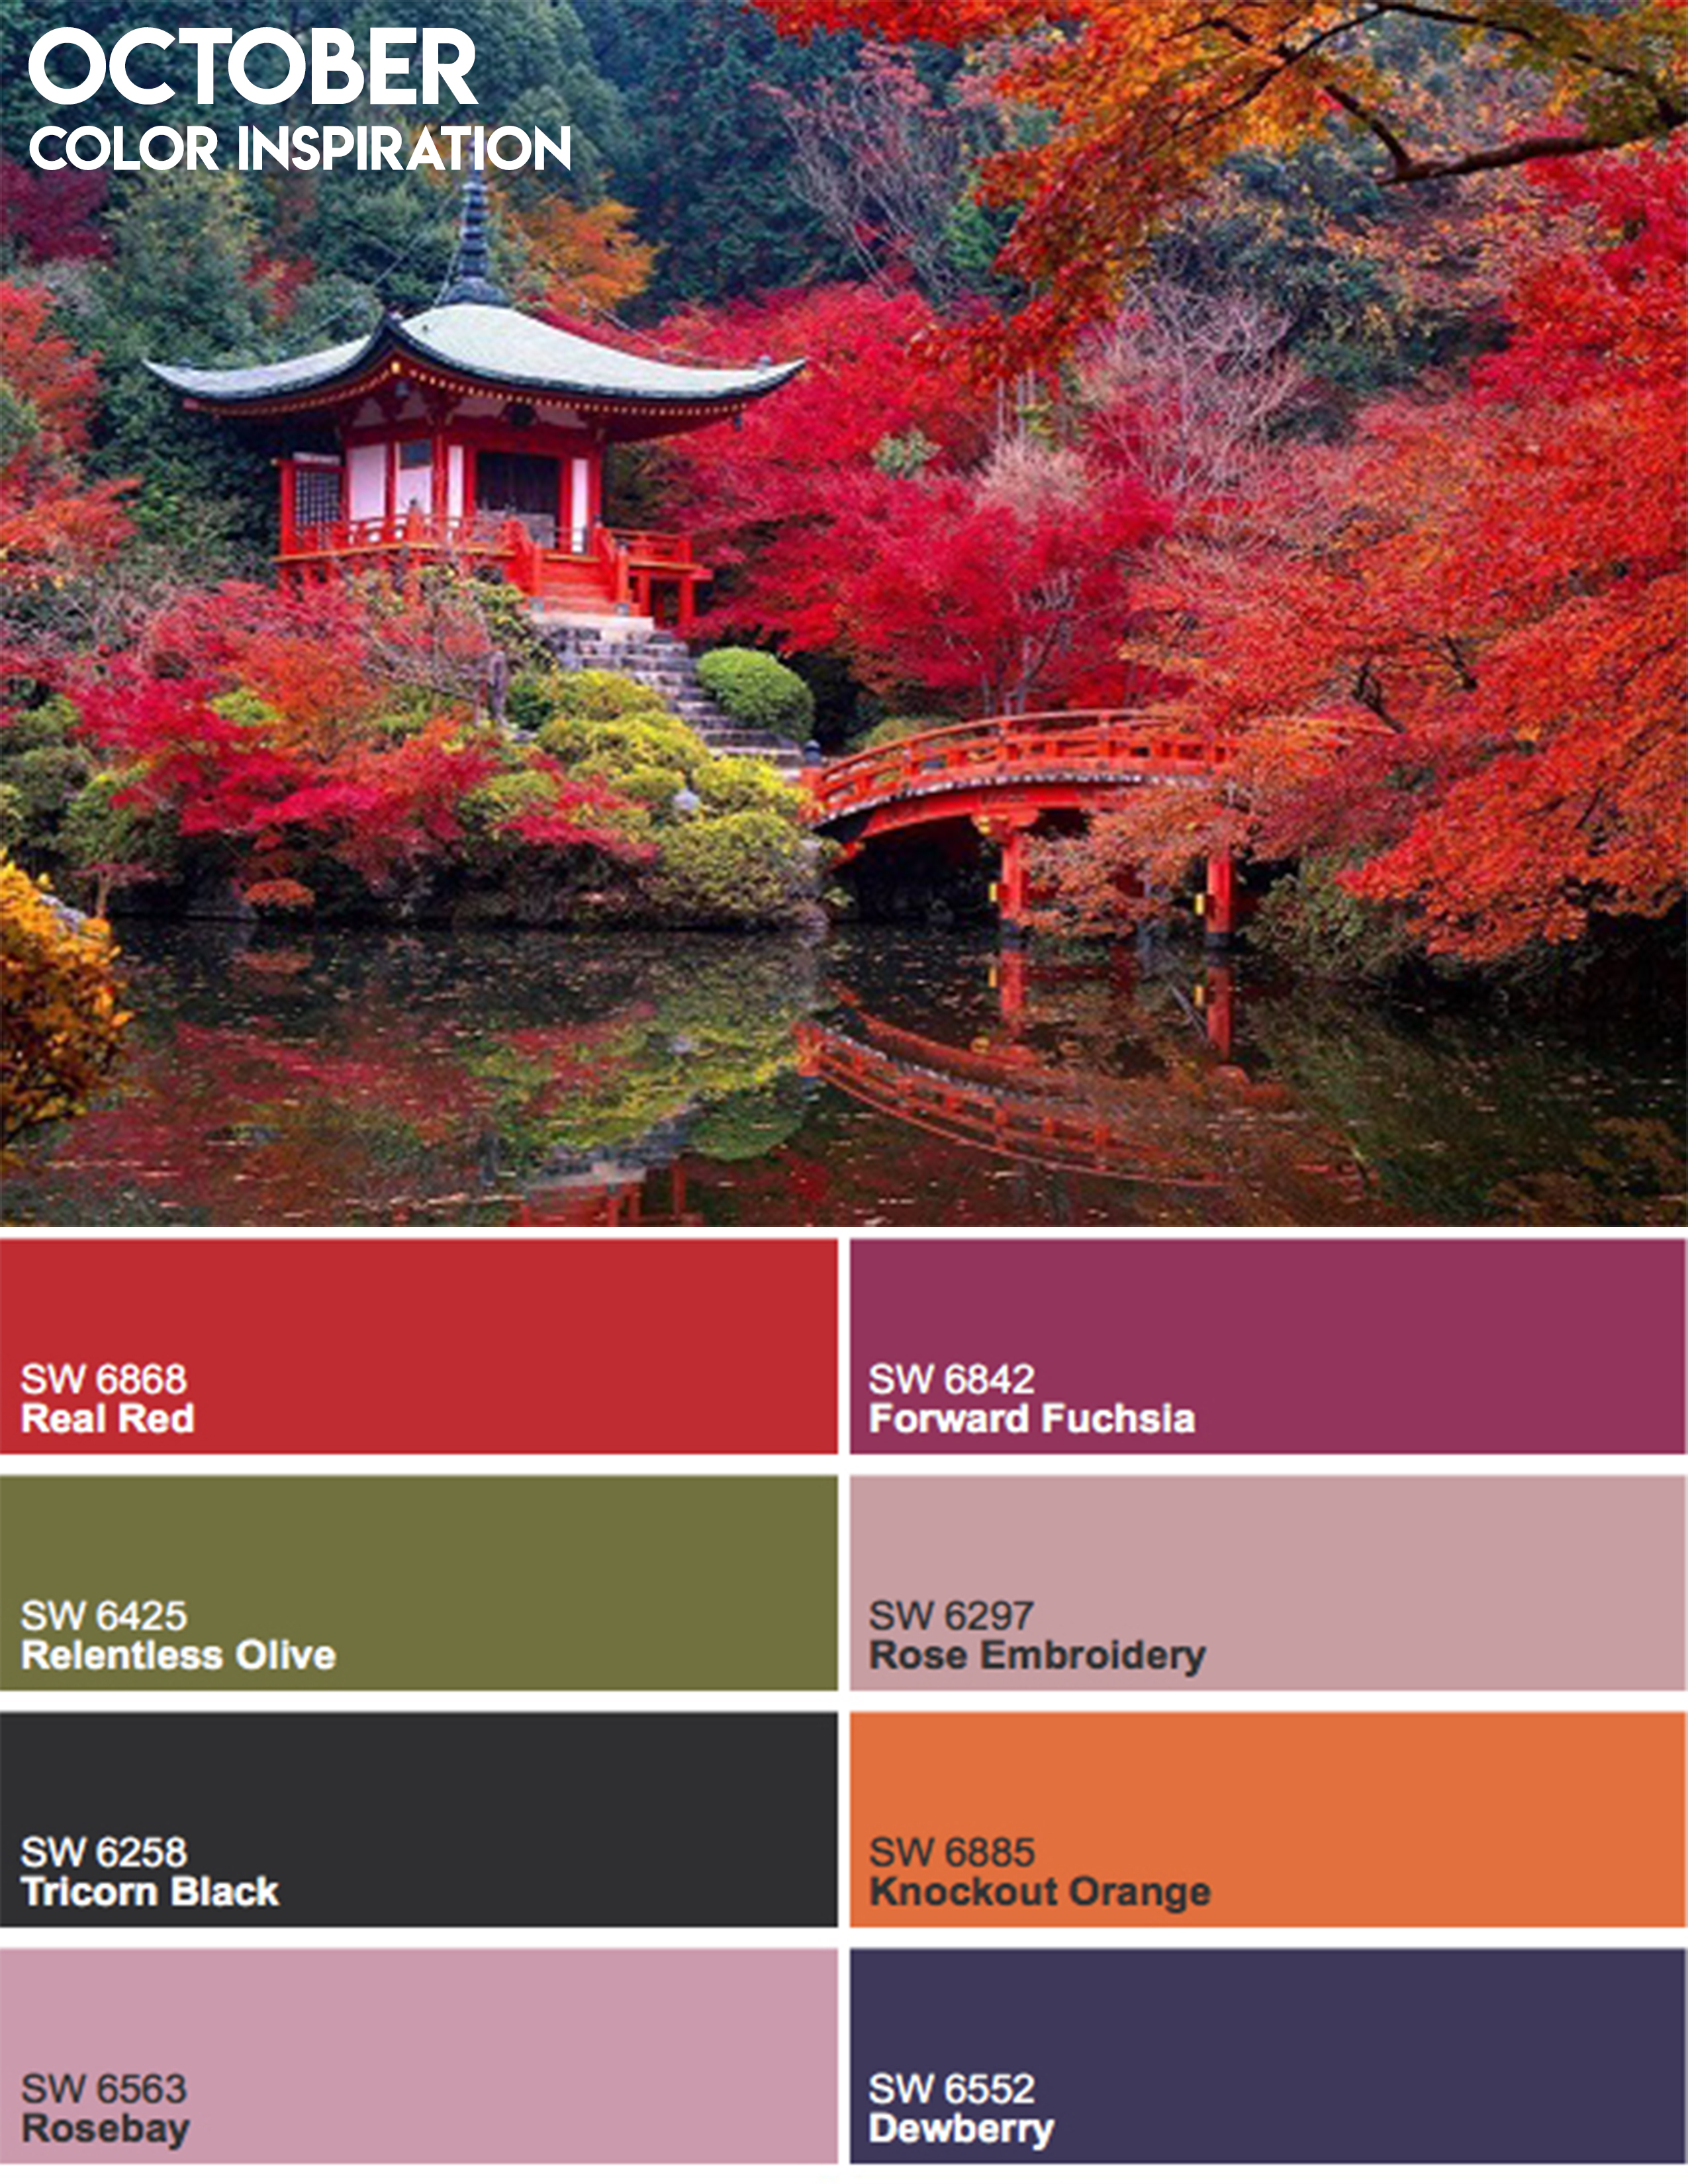 October Color Inspiration In Kyoto Japan Paula Ables Interiors